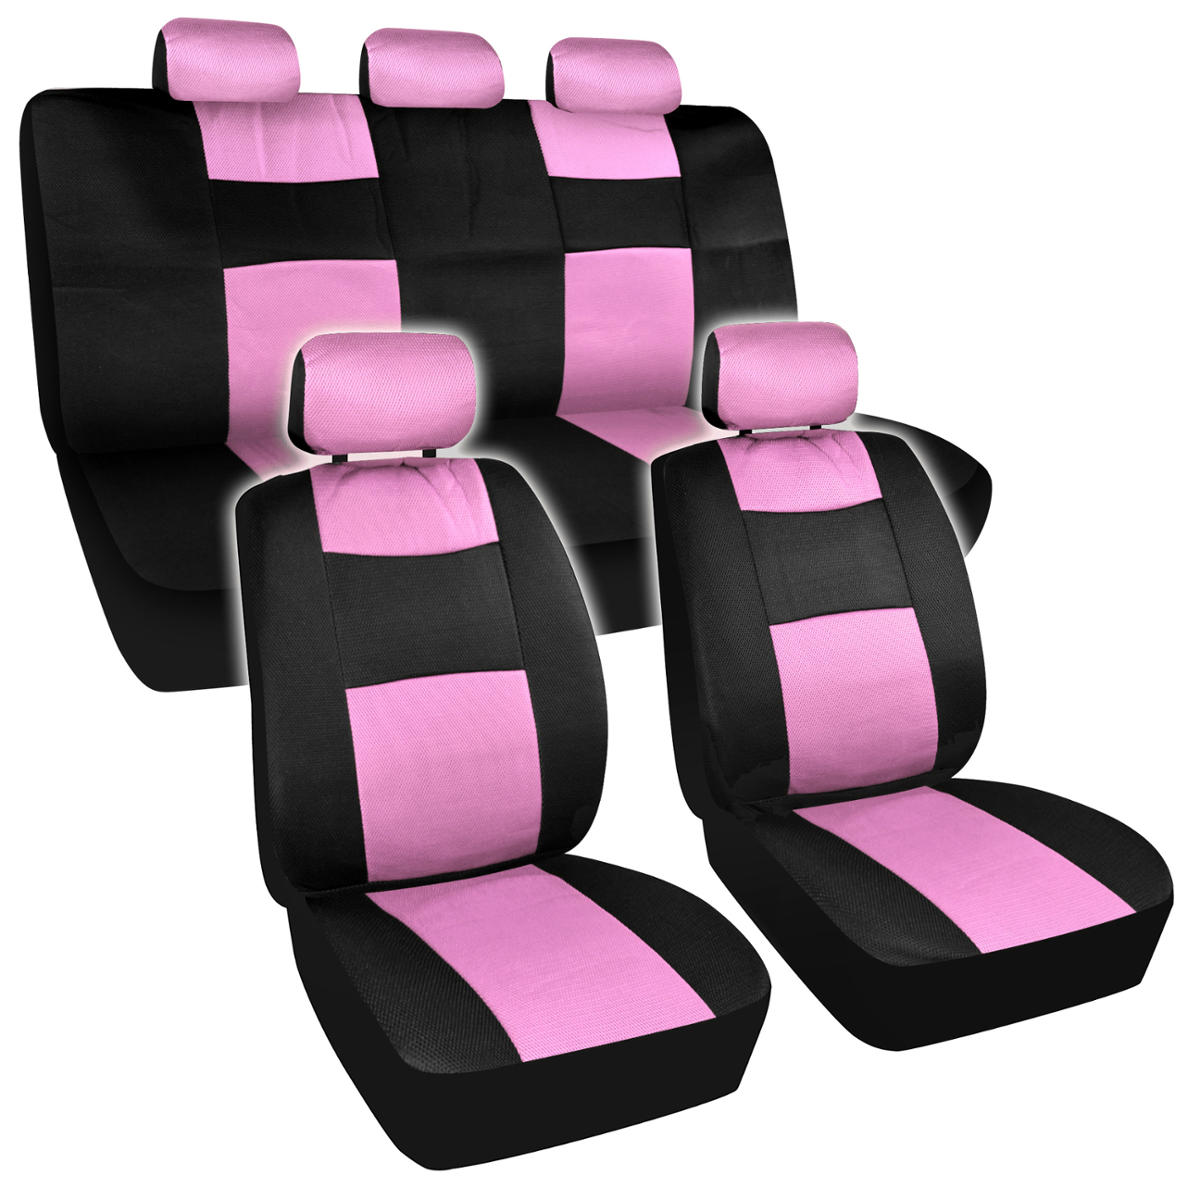 chair covers pink oto massage price list seat black and mesh cloth polyester 2 color